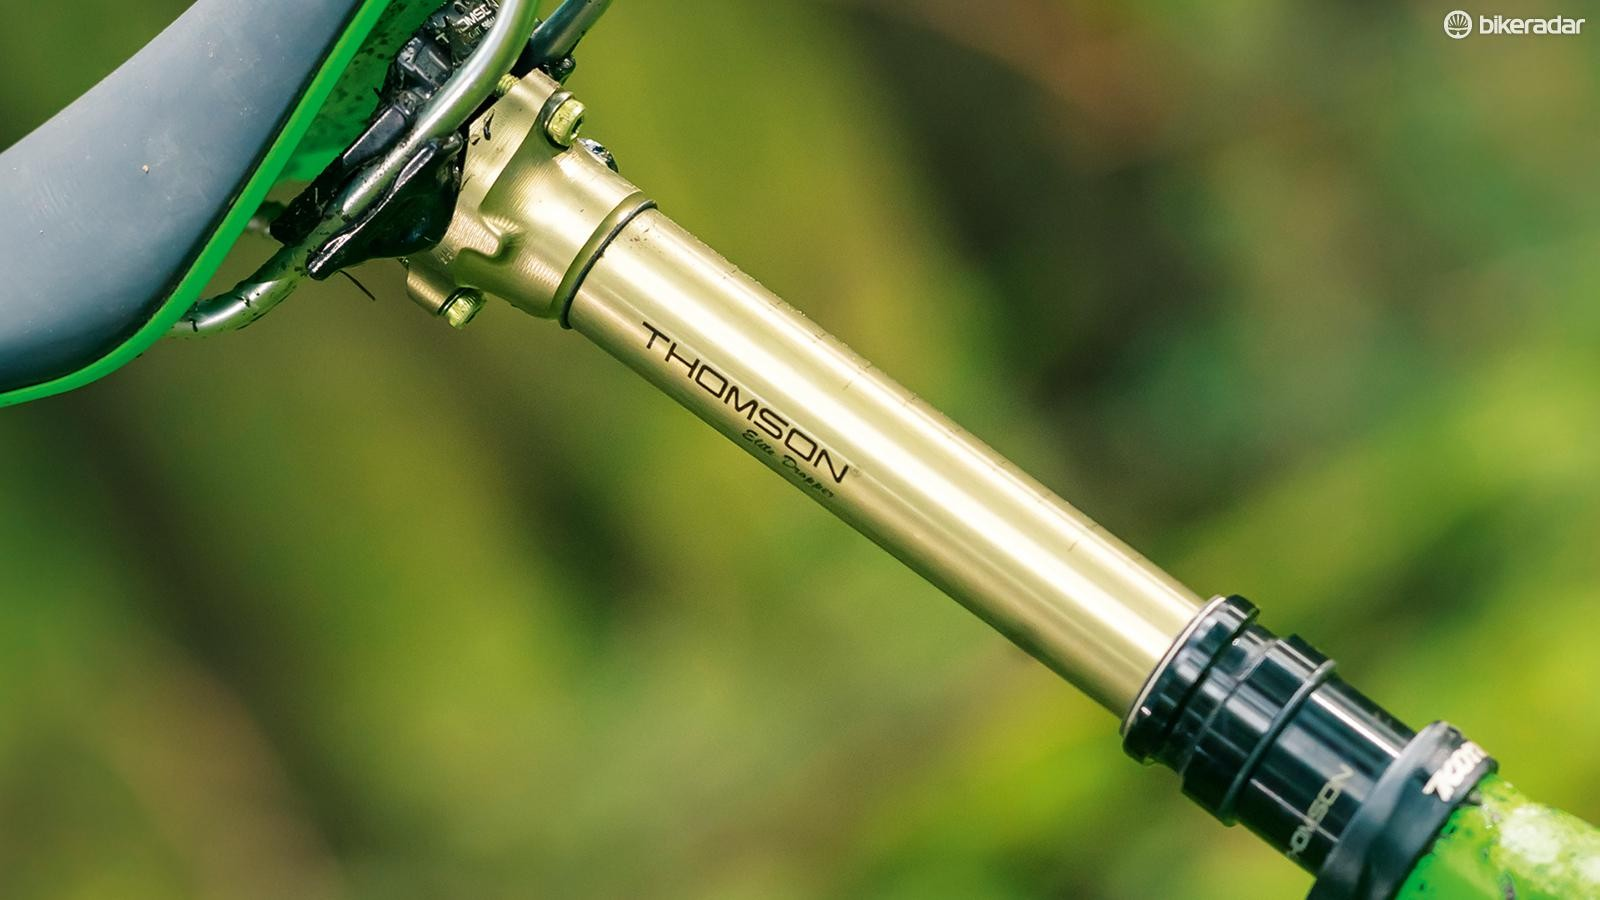 The Thomson Elite dropper post, our weapon of choice for this test